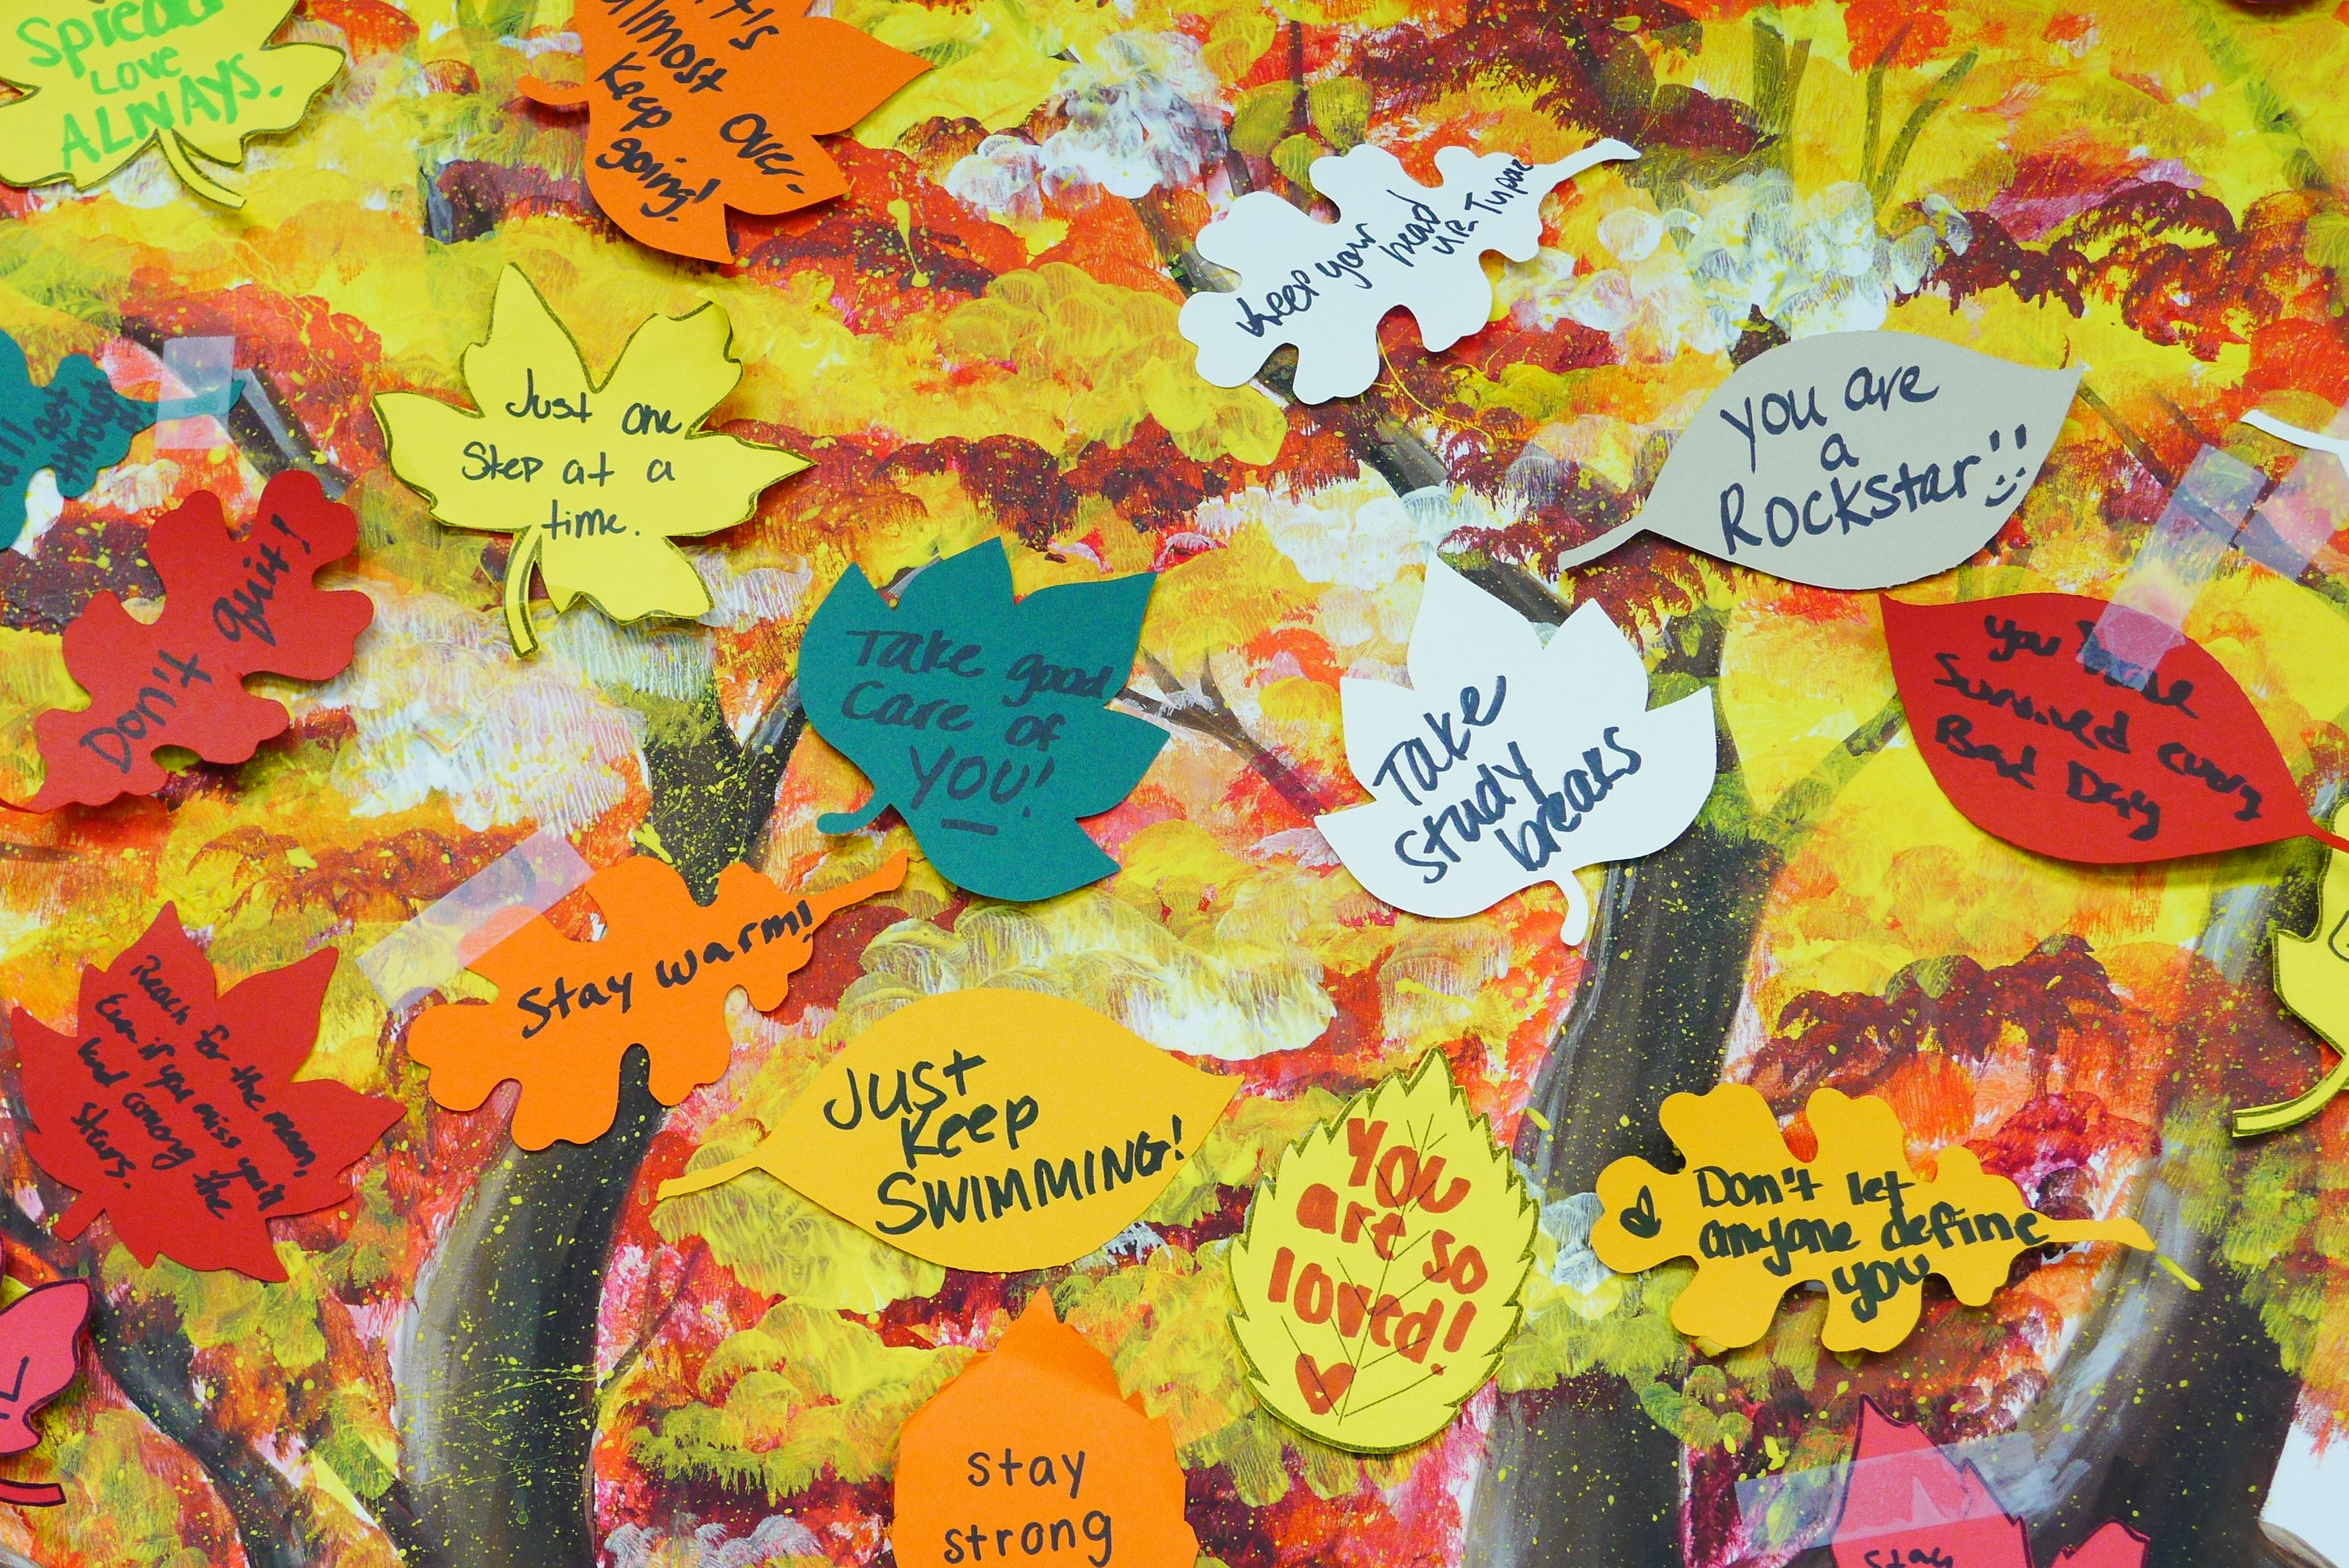 Painting of a positivity tree. The tree has leafs that students can write positive quotes on to attach to the tree.